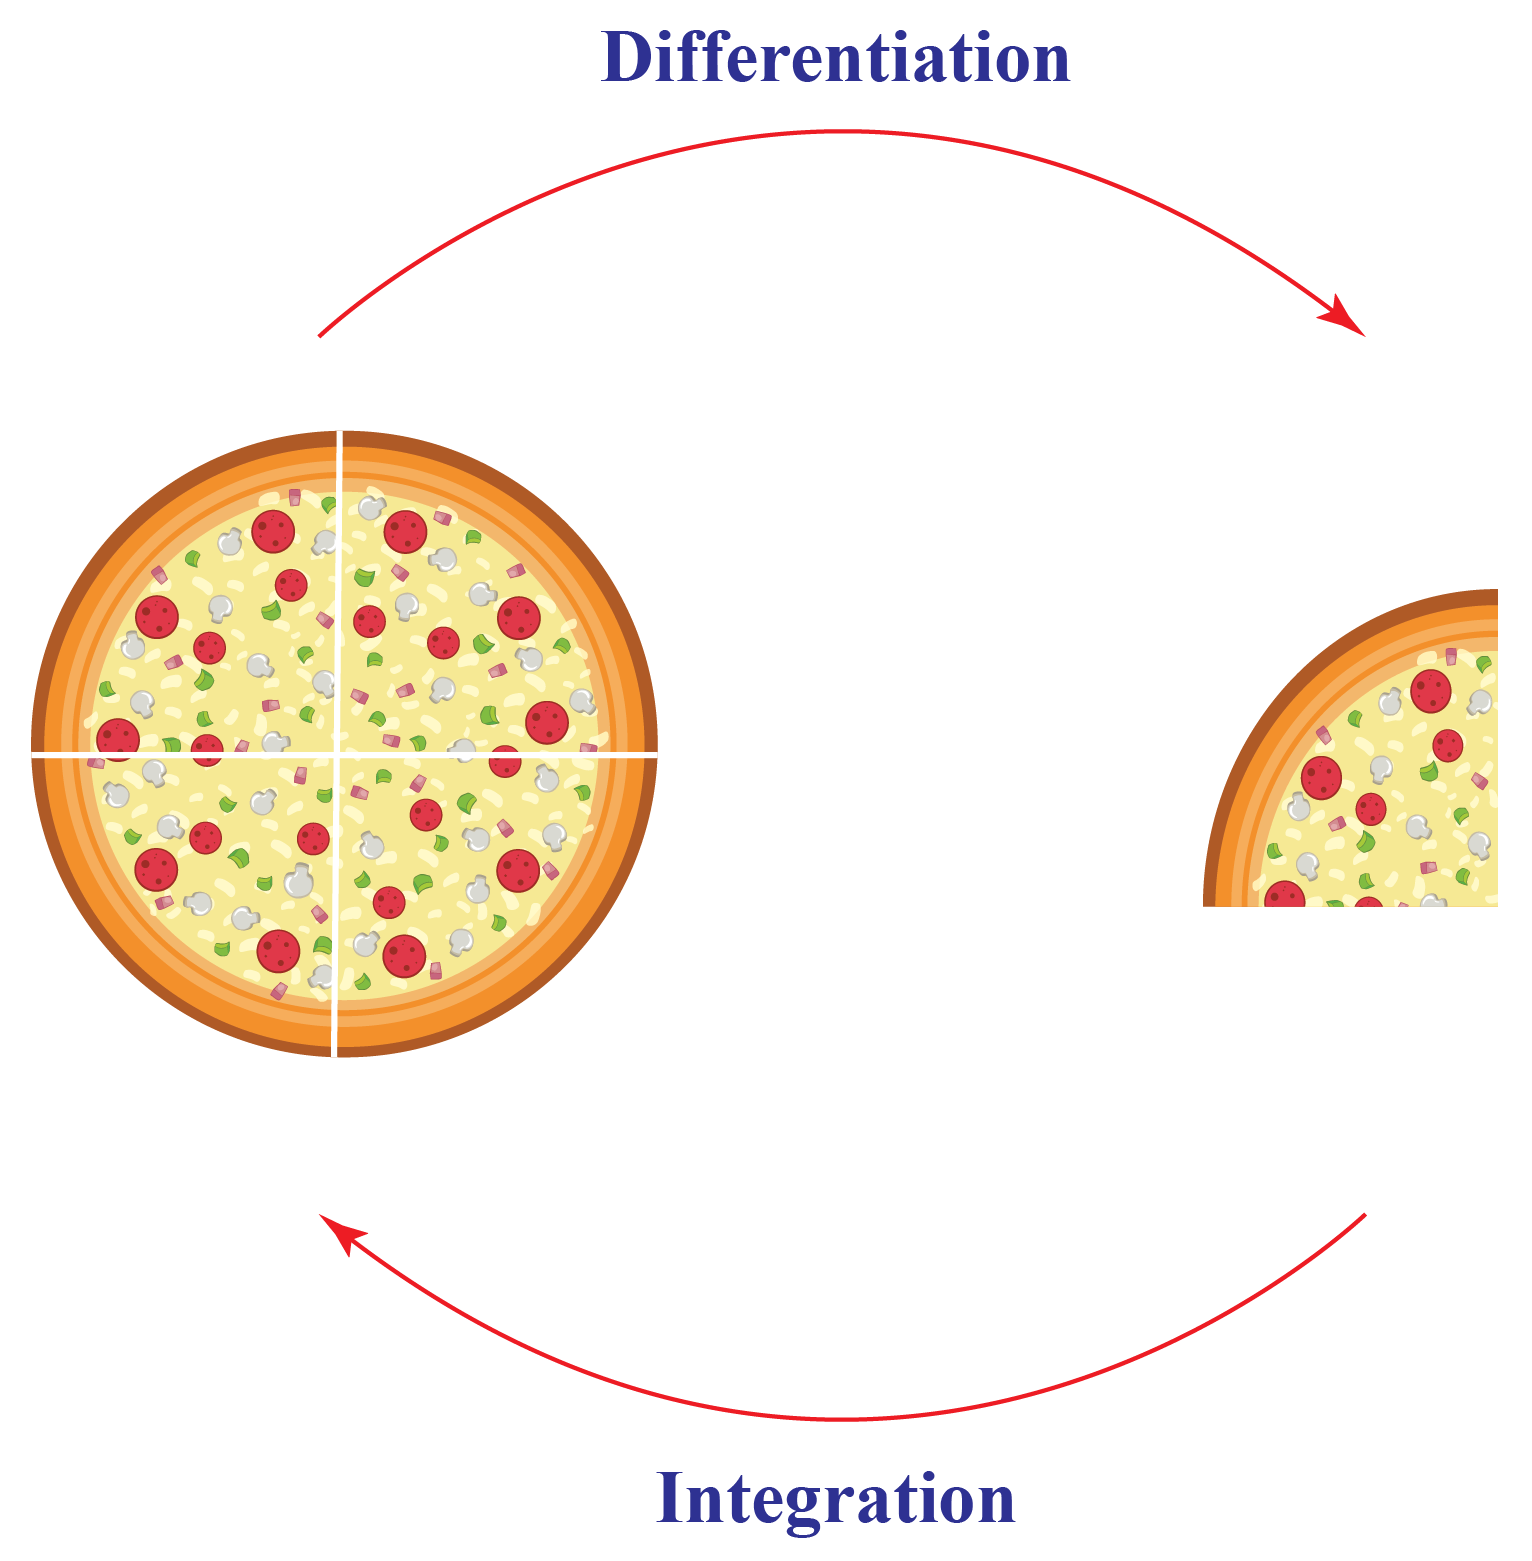 Integration is reverse process of differentiation